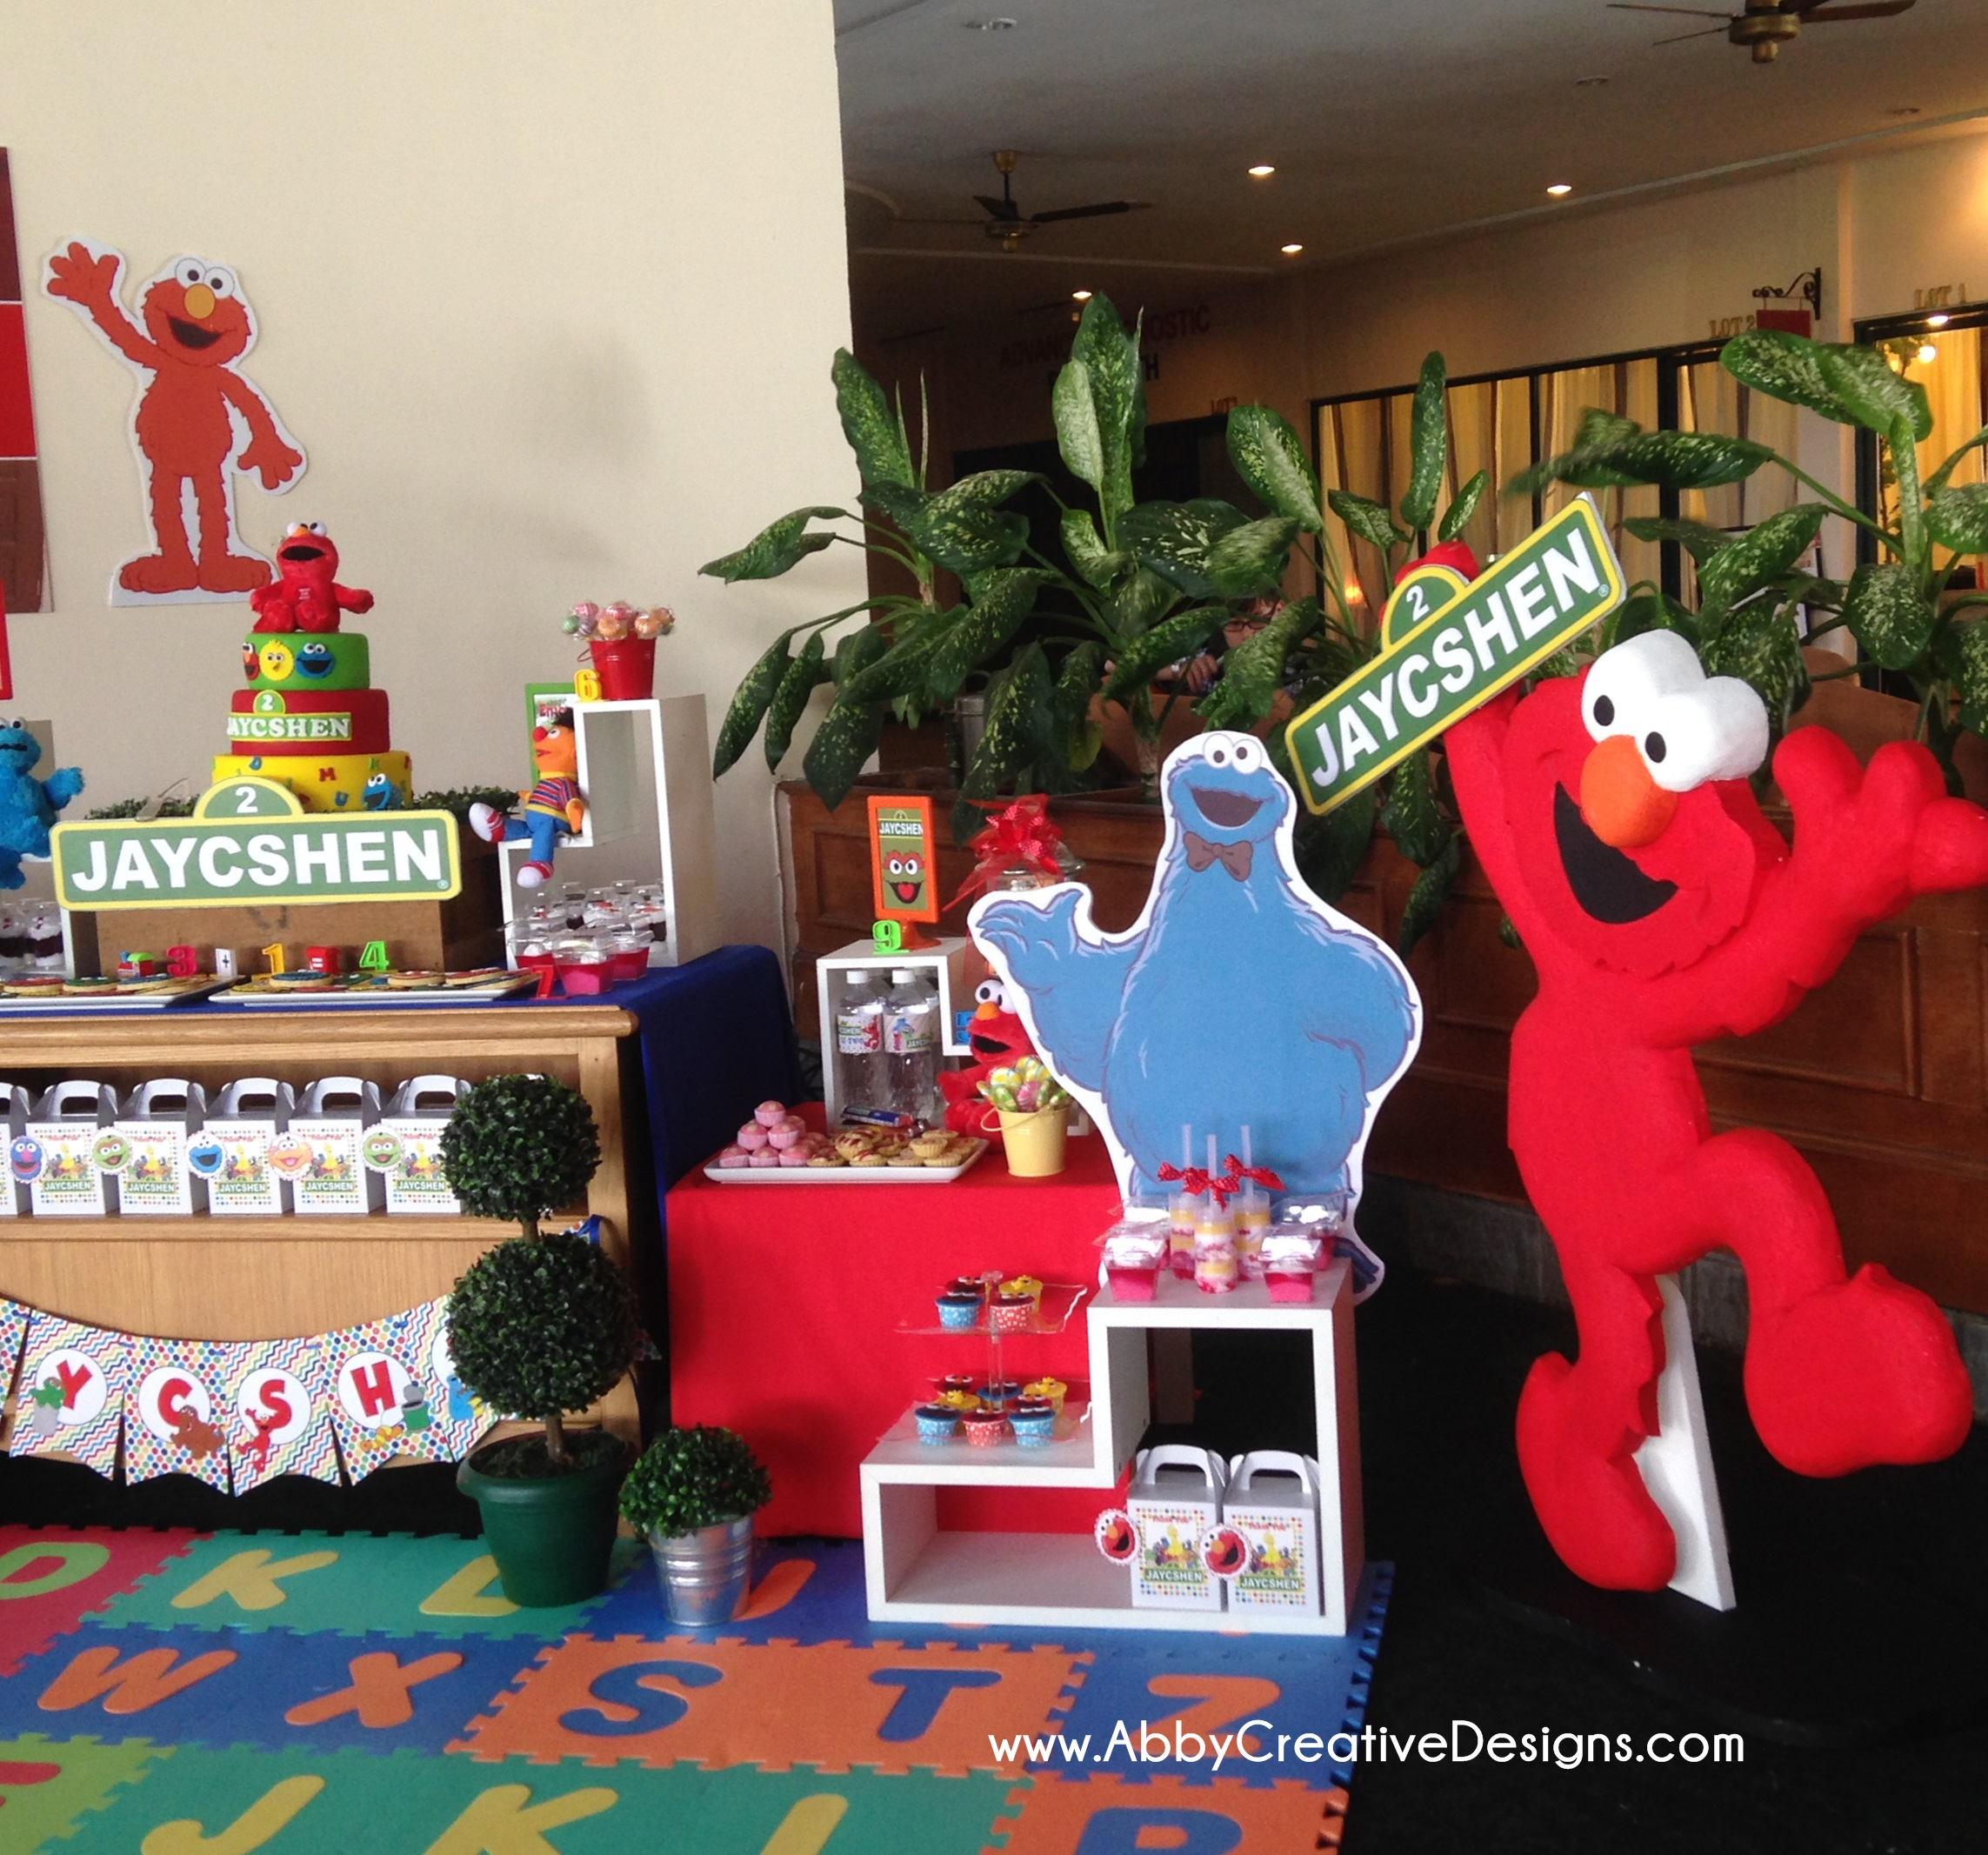 Sesame Street Bedroom Decorations Theme Sesame Street 2nd Birthday Bash For Jaycshen Its More